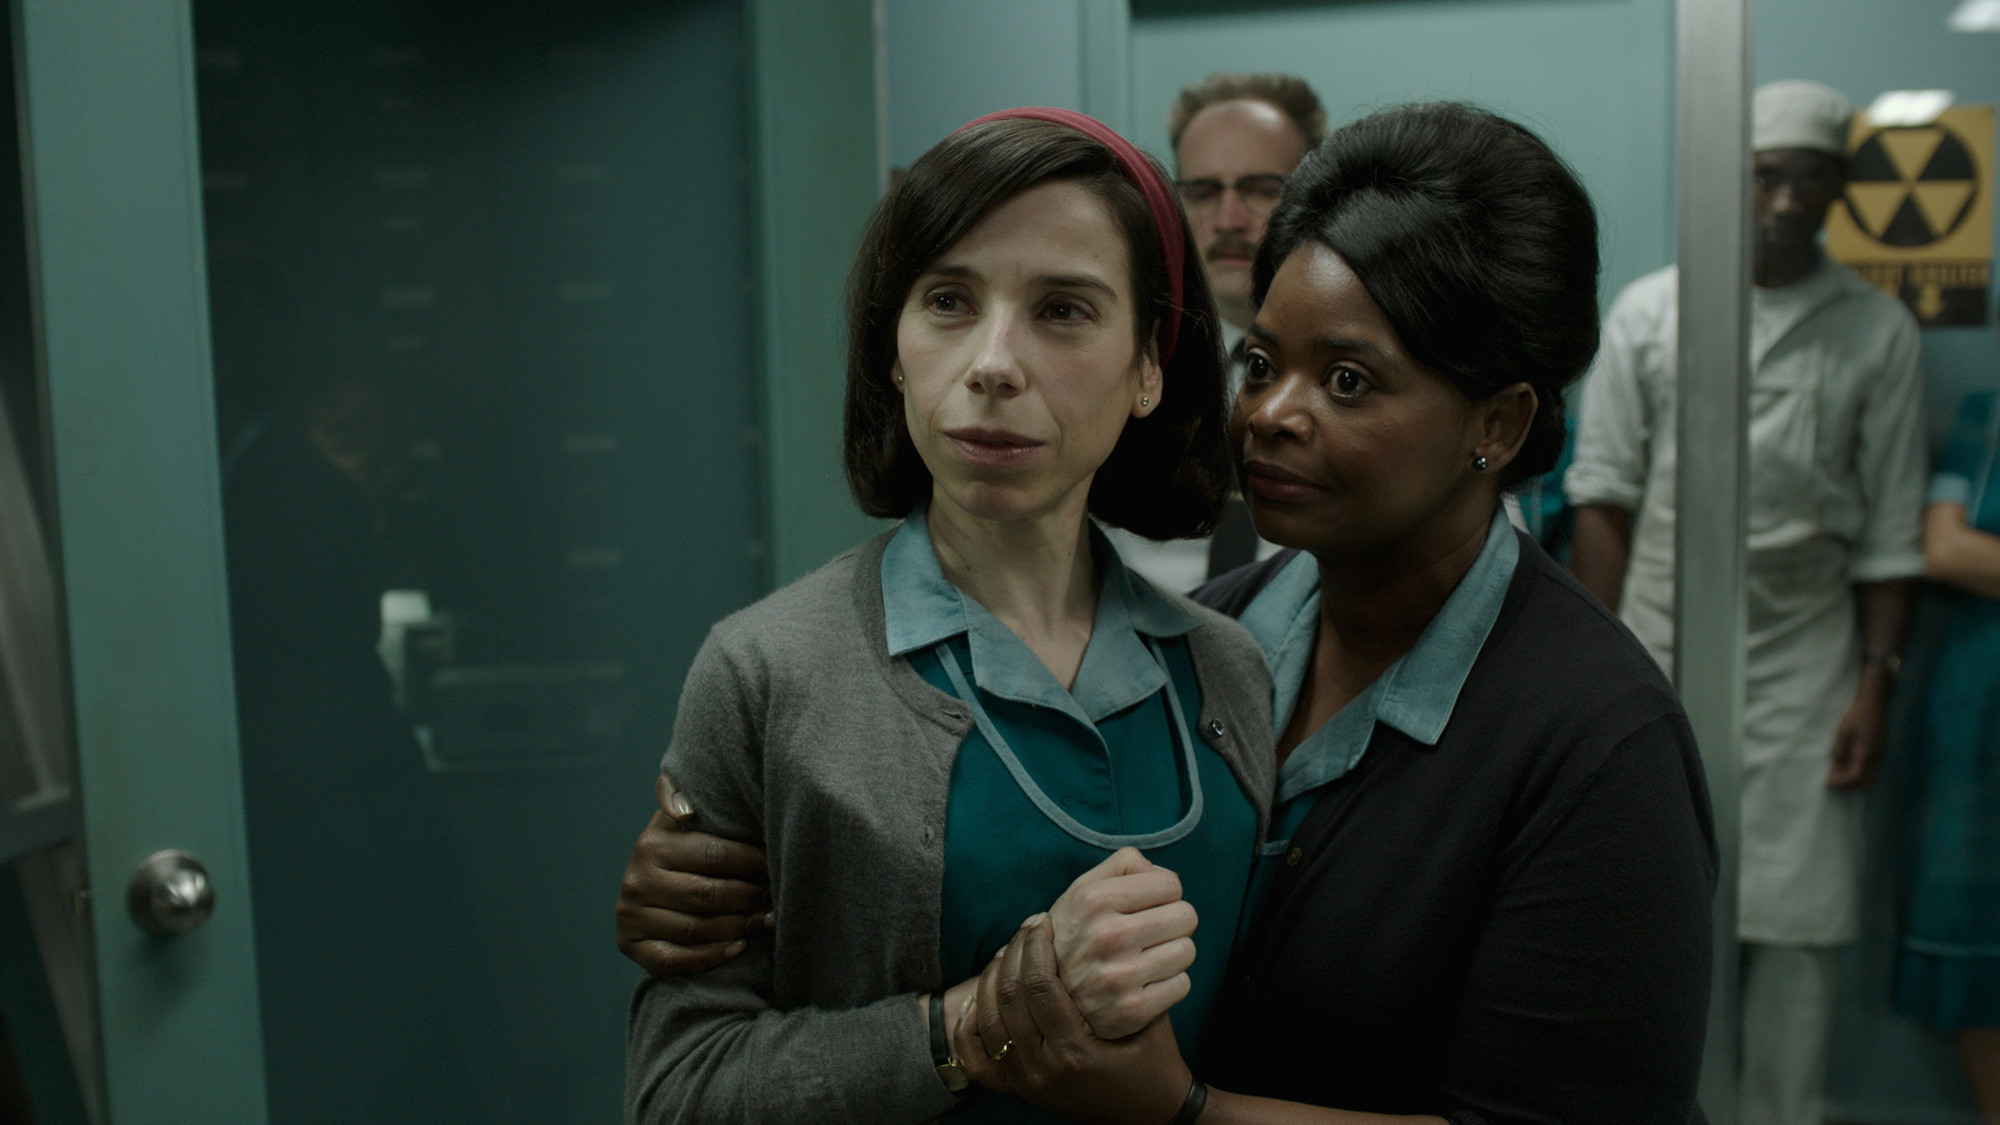 The Shape of Water. 2017. USA. Directed by Guillermo del Toro. Courtesy of Fox Searchlight